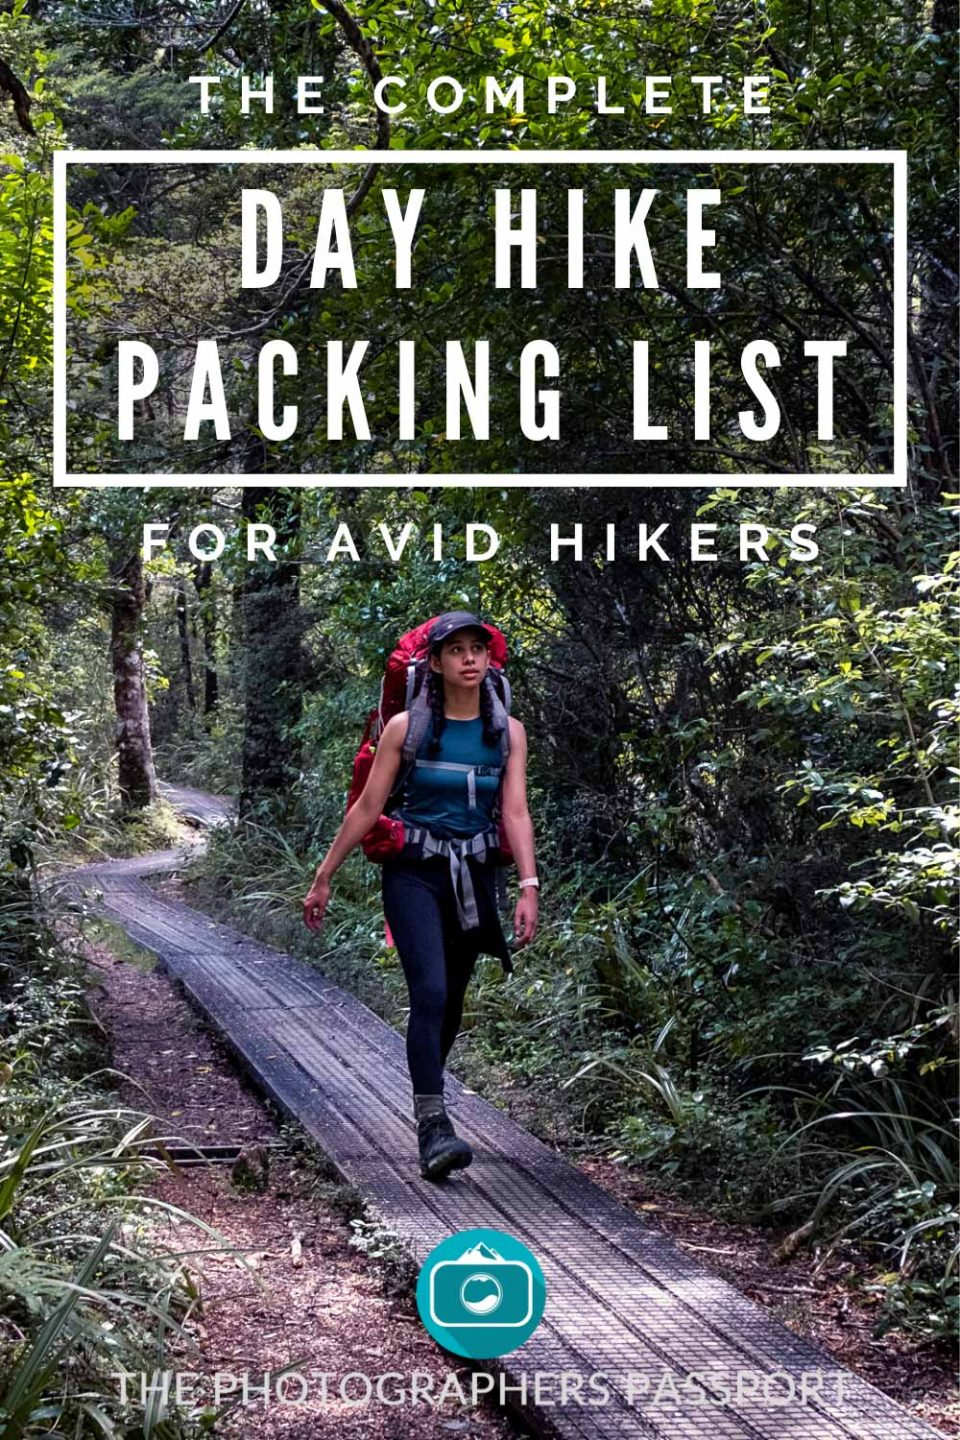 This complete day hike packing list will help you get on the trails in no time. Whether you're a complete beginner or a seasoned hiker this list will have something for you.